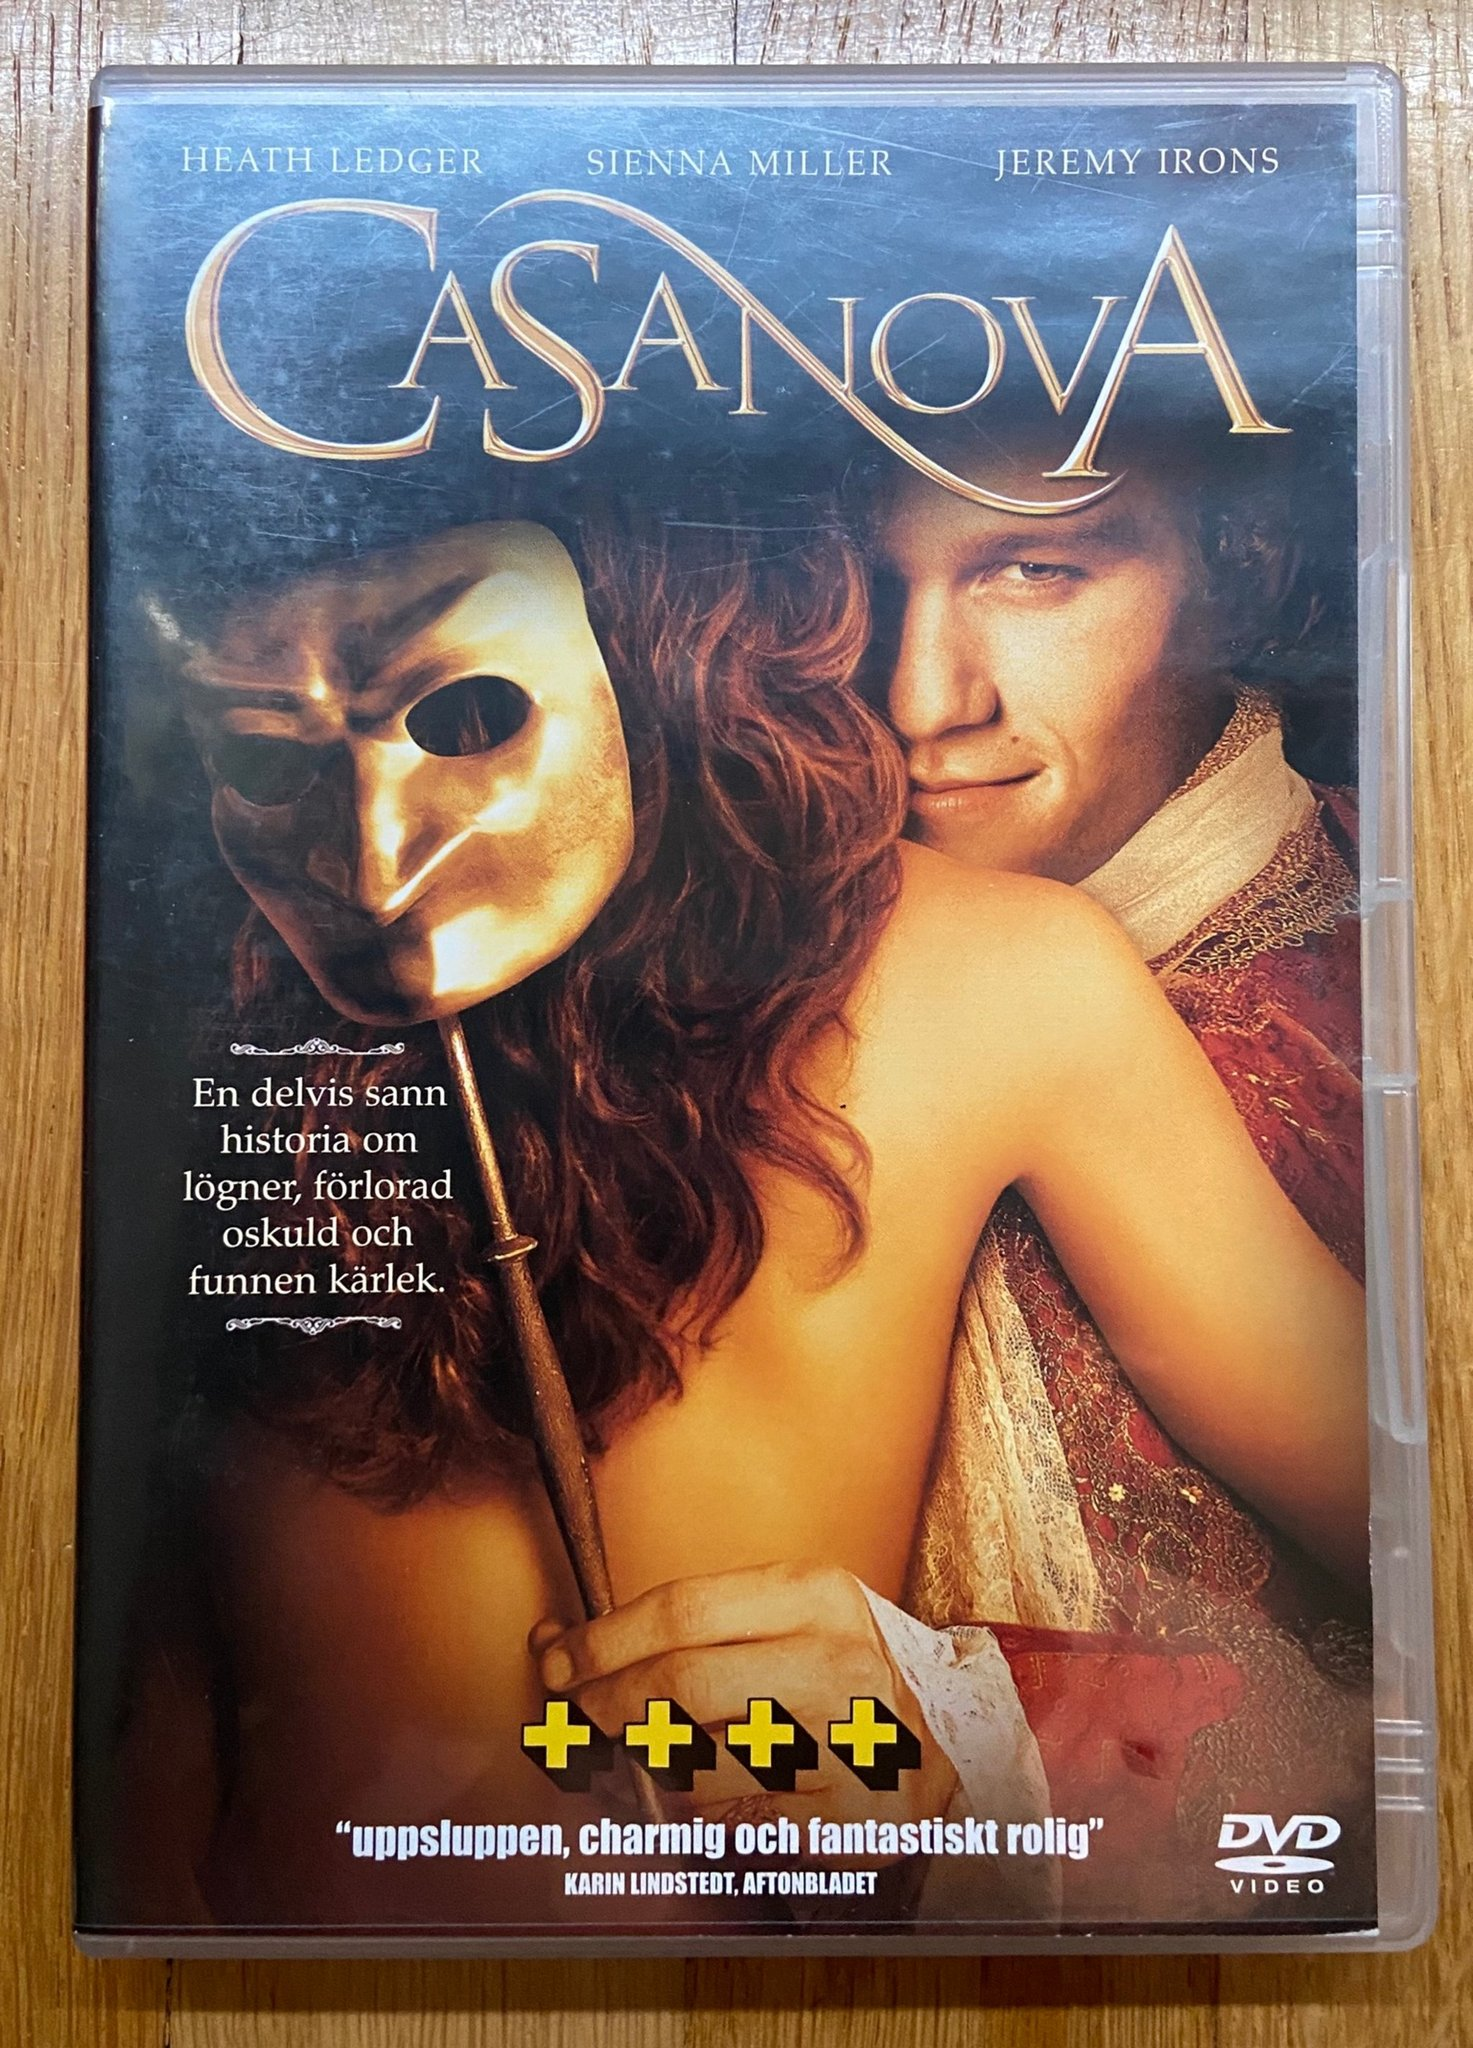 Casanova - Heath Ledger, Sienna Miller, Jeremy Irons